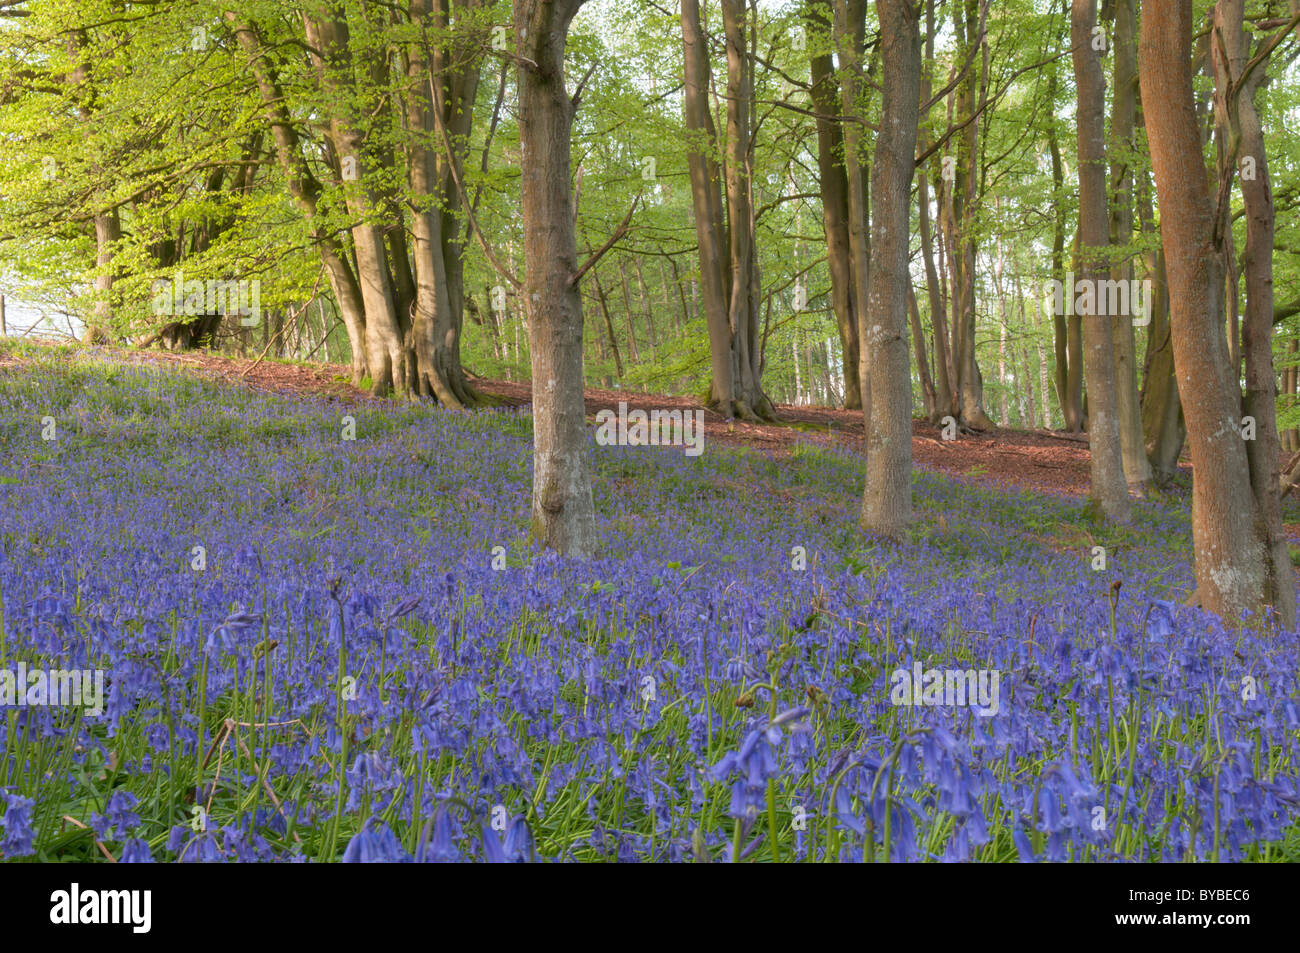 Bluebell (Endymion non-scriptus) under trees. Oak (quercus sp.) and Common beech (Fagus sylvatica). West Sussex, - Stock Image